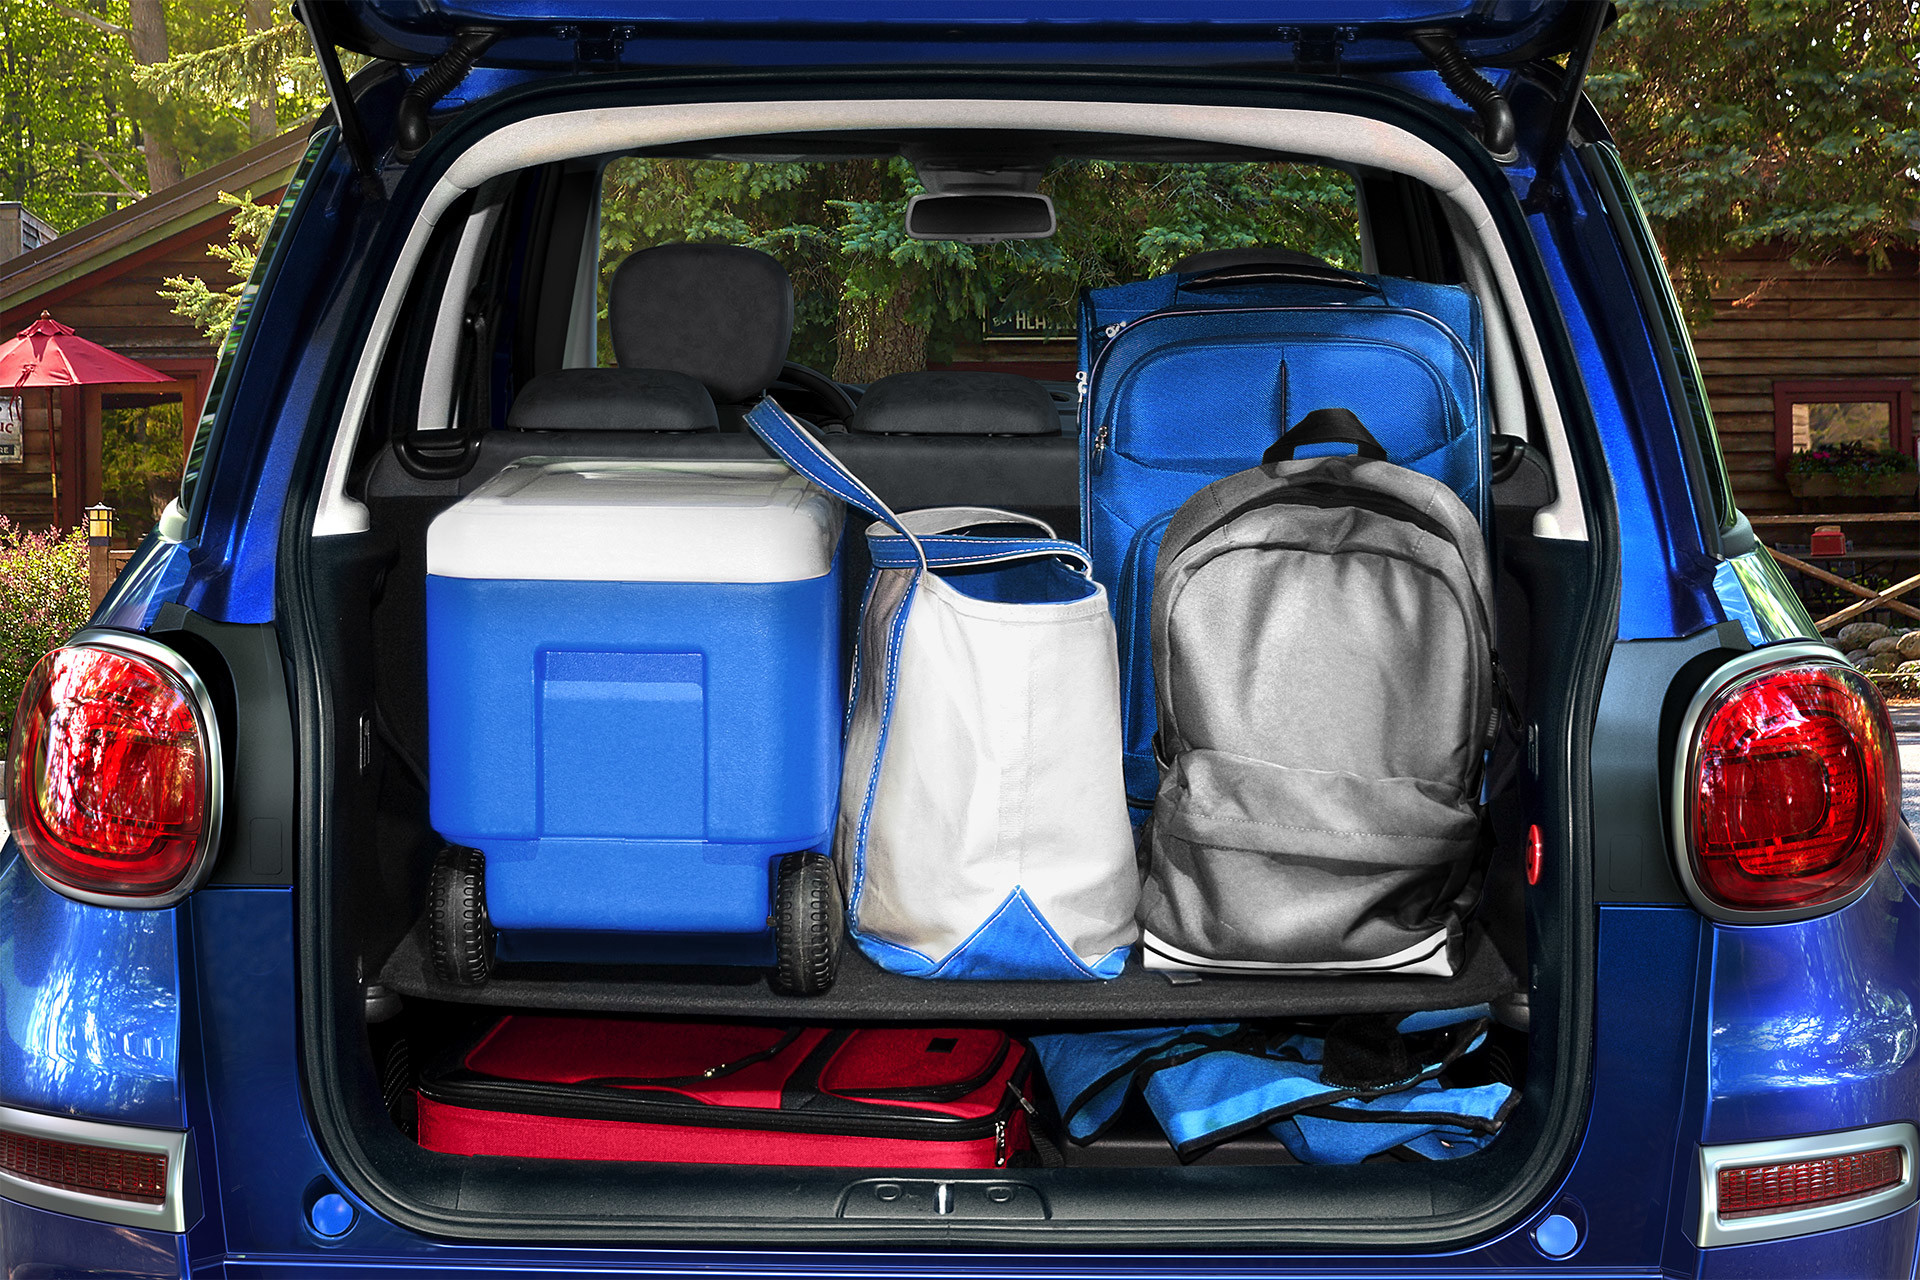 2019 Fiat 500L view with trunk open, filled with cargo